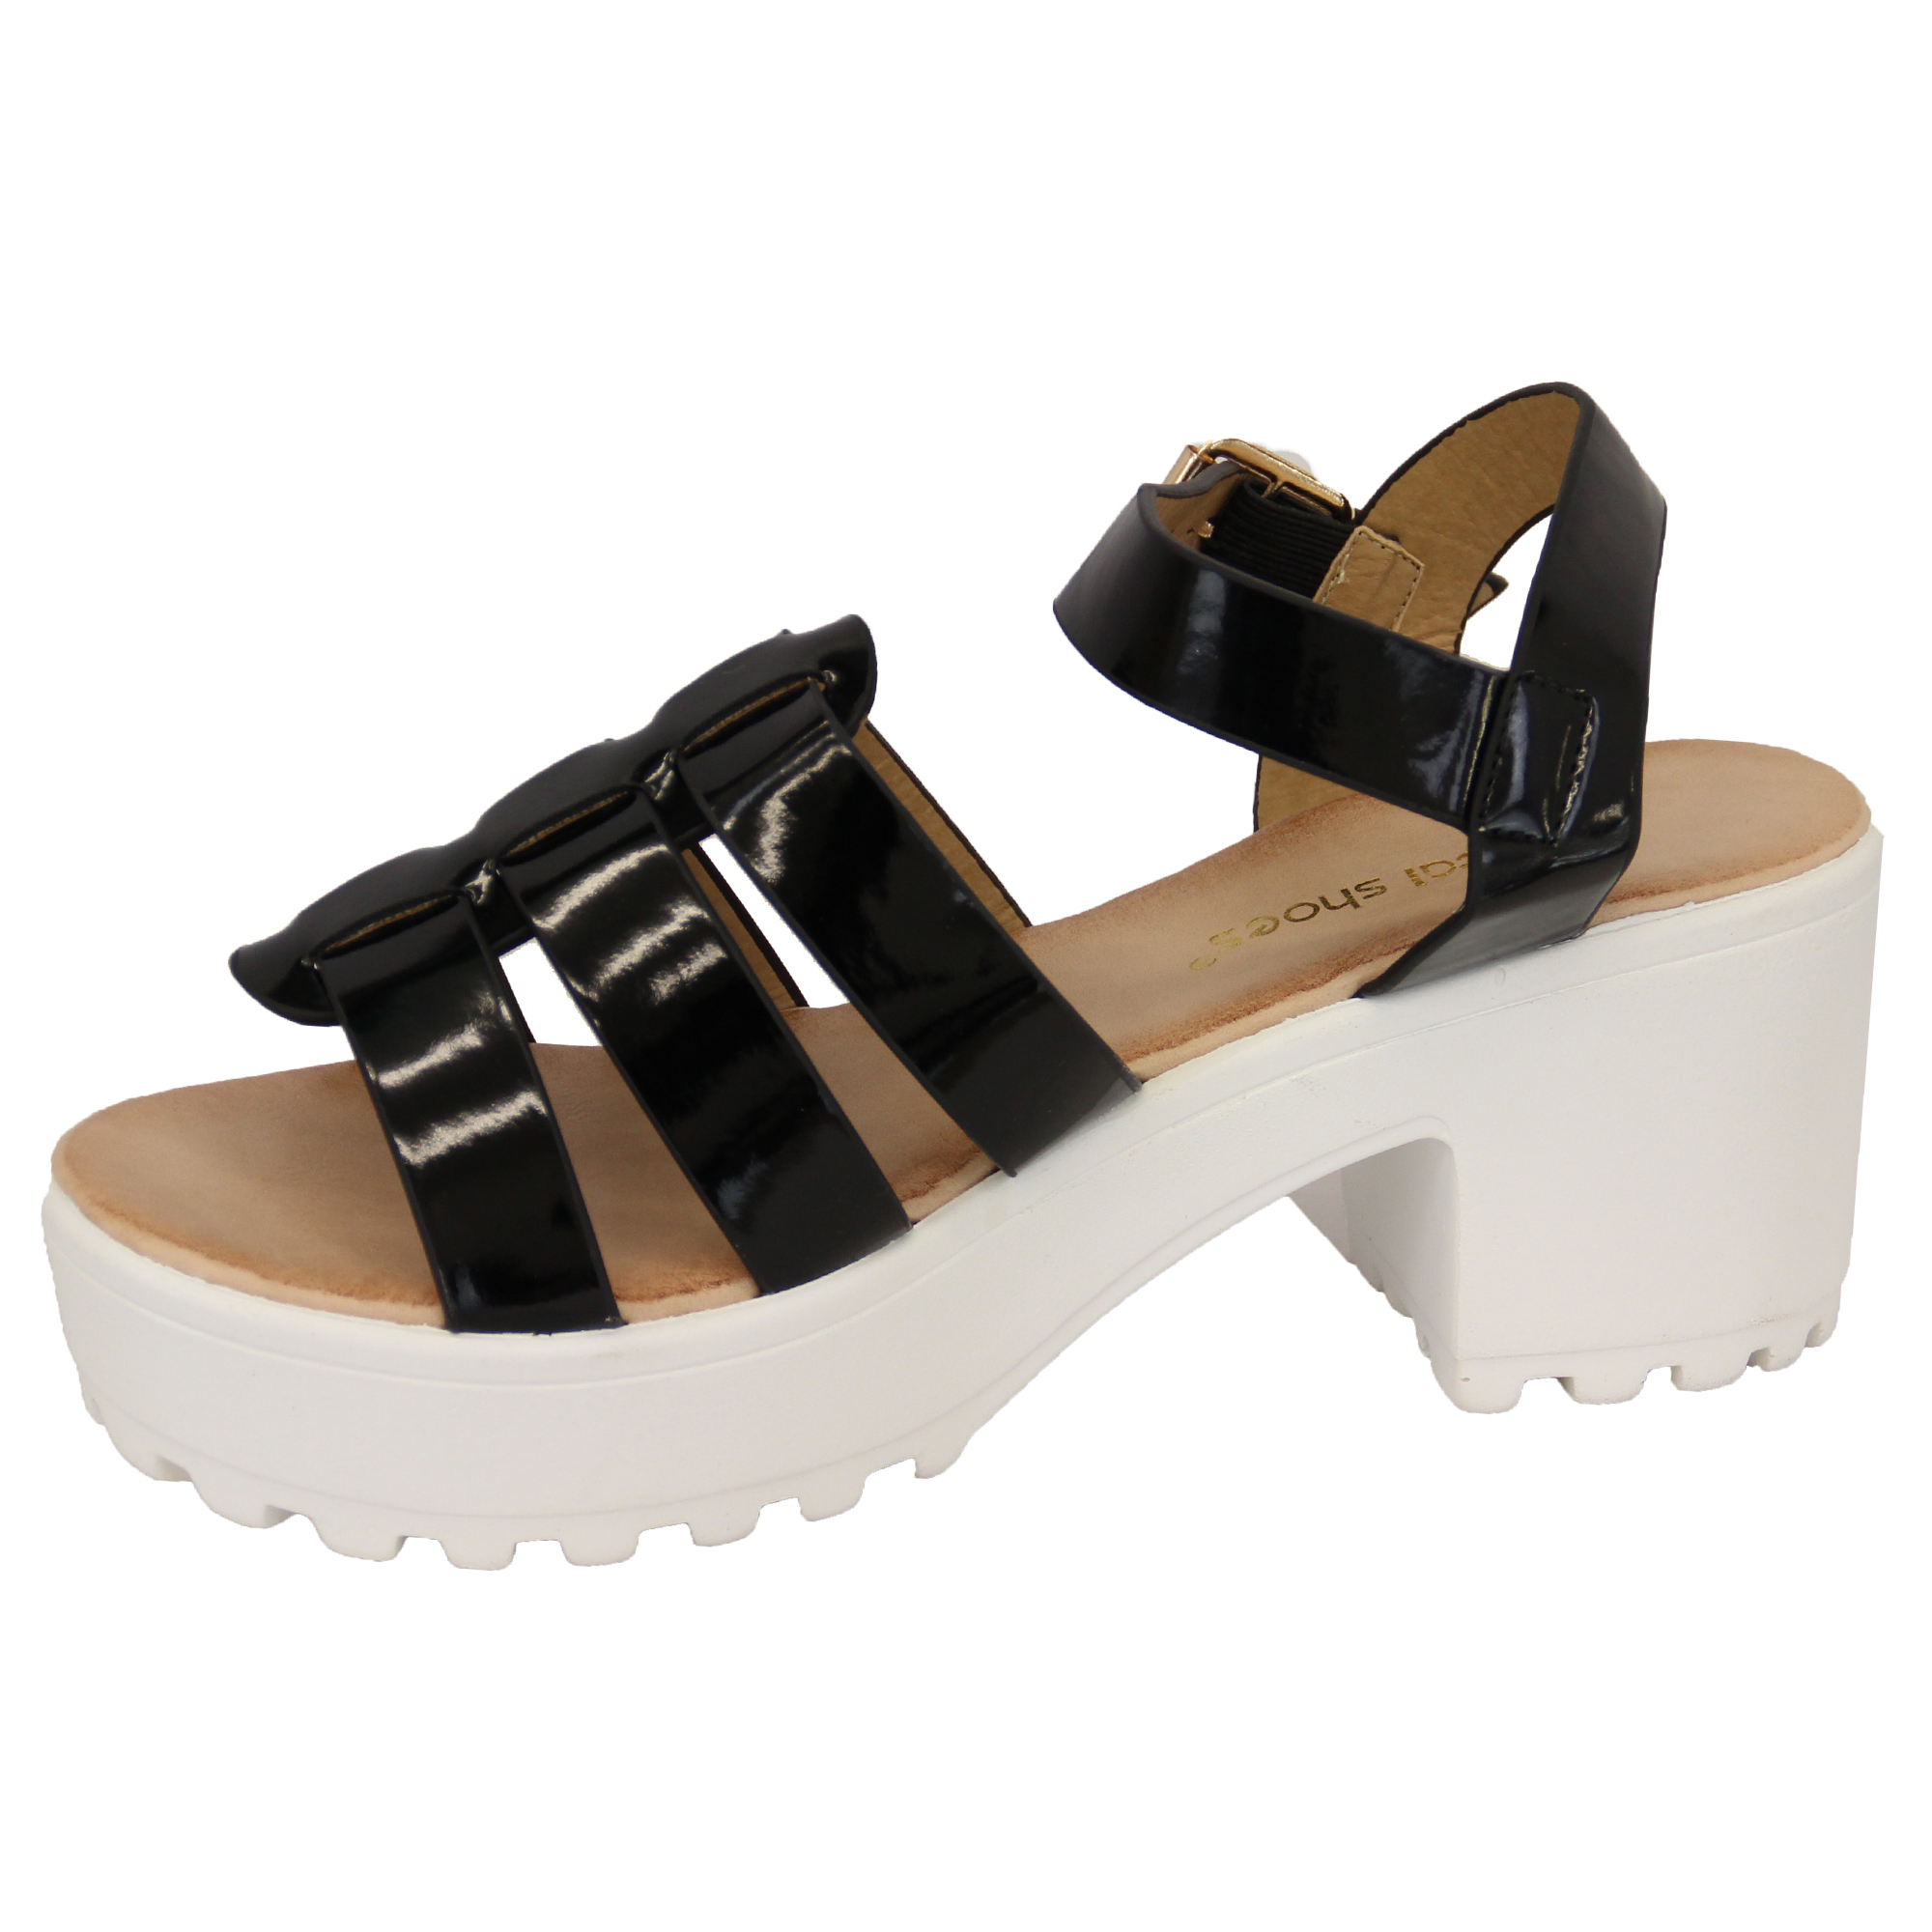 Ladies-Sandals-Womens-Cleated-Chunky-Block-Heel-Mesh-Platforms-Strap-Patent-New thumbnail 3